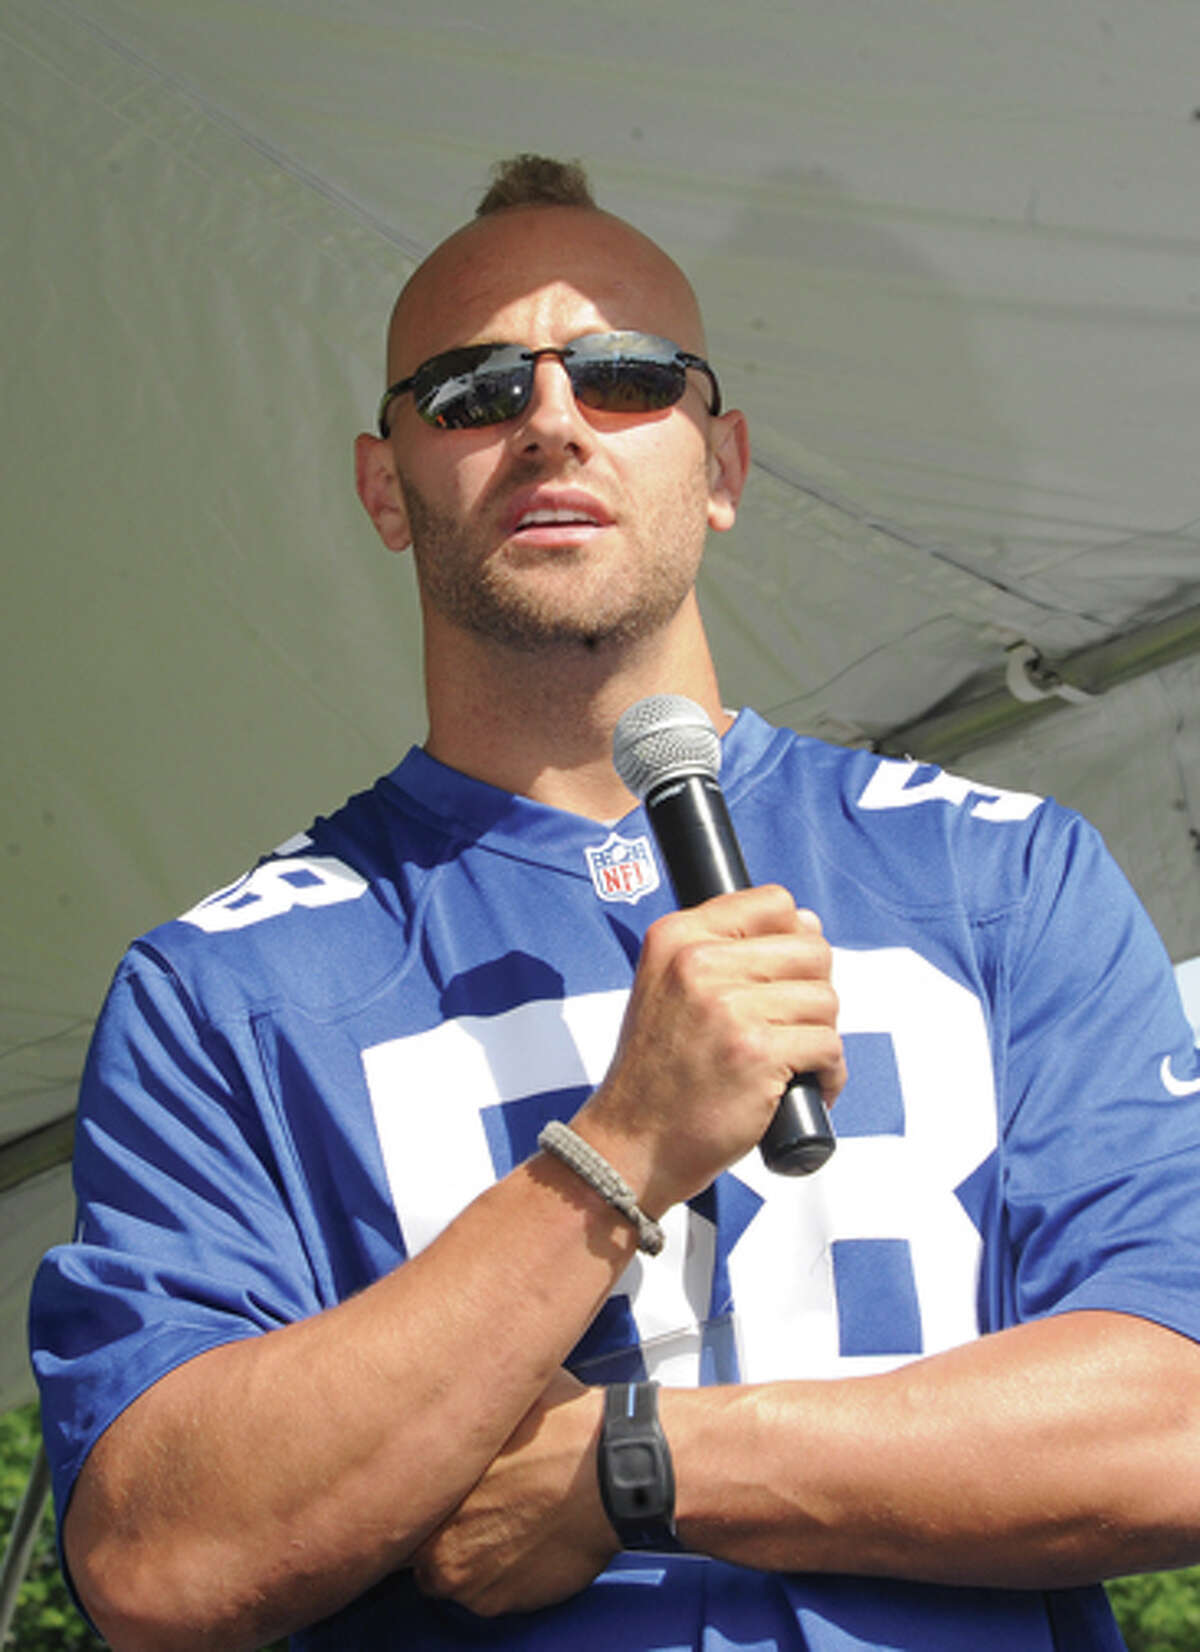 Mark Herzlich, a linebacker for the New York Giants and a Bone Cancer Survivor speaks Sunday at the 5K race for Multiple Myeloma. Hour photo/Matthew Vinci